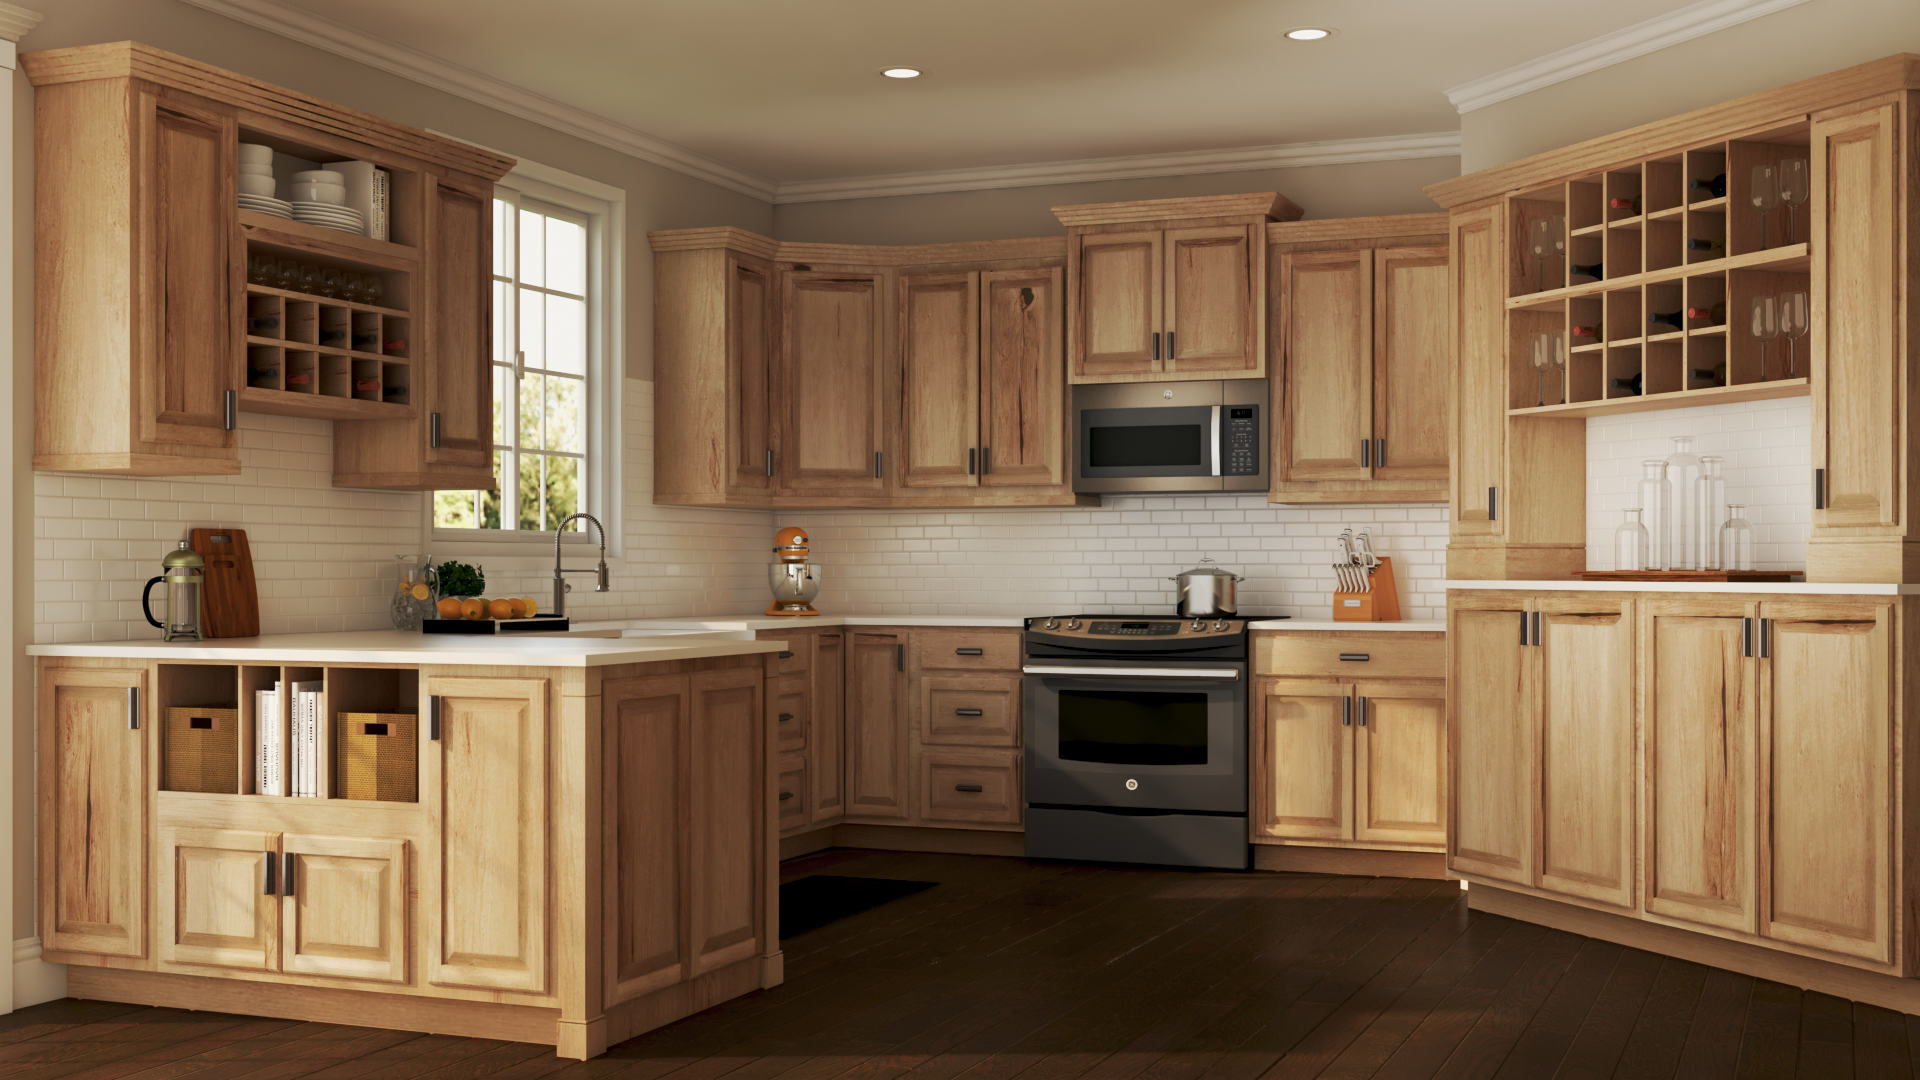 Denver Hickory Kitchen Cabinets Hampton Bath Cabinets In Natural Hickory Kitchen The